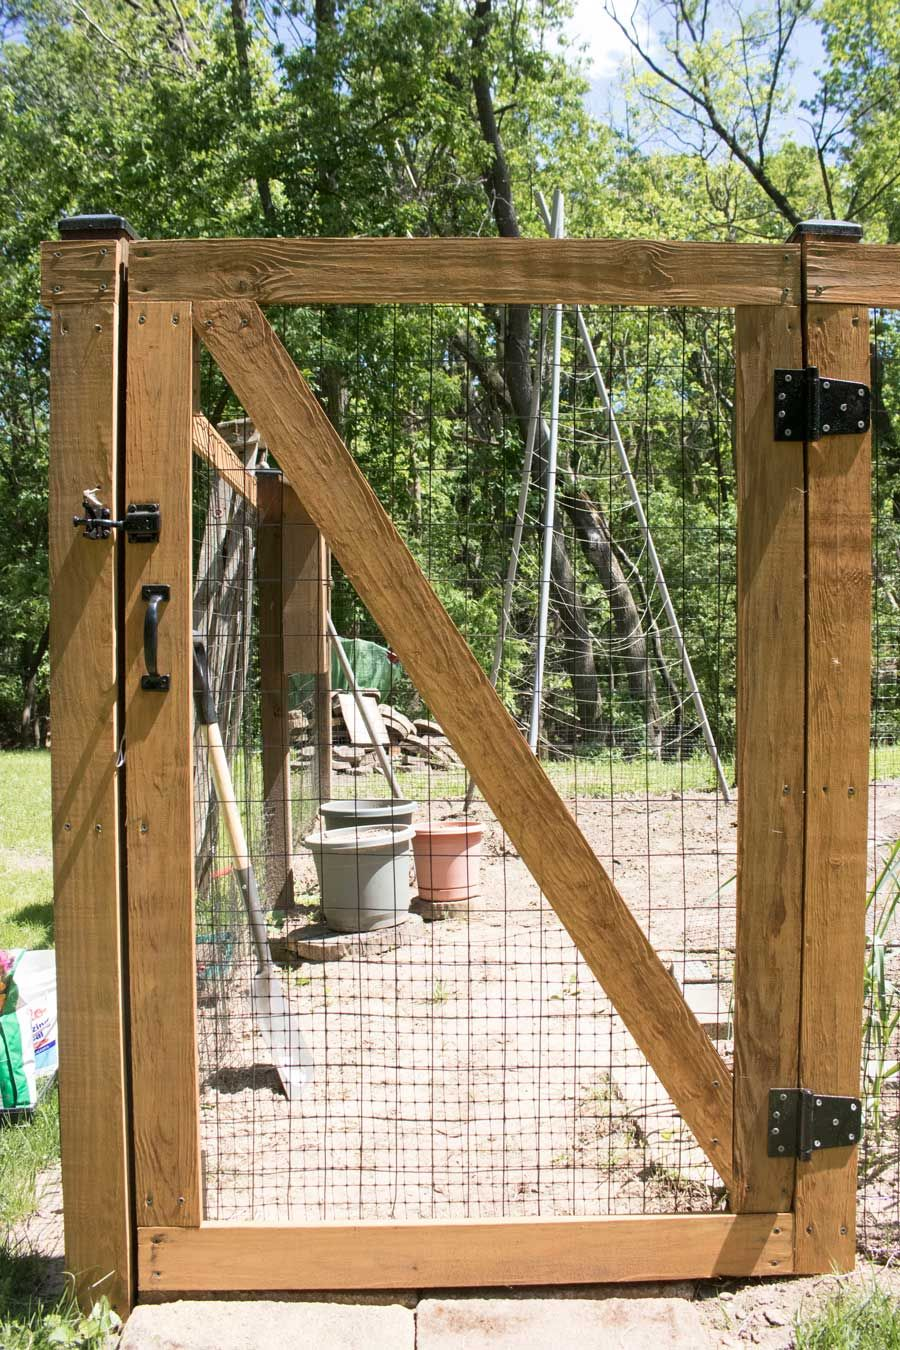 Diy Garden Fence Self Closing Hinges And Designed With Easy To Operate Latch For Kids To Access Diy Garden Fence Backyard Fences Diy Fence